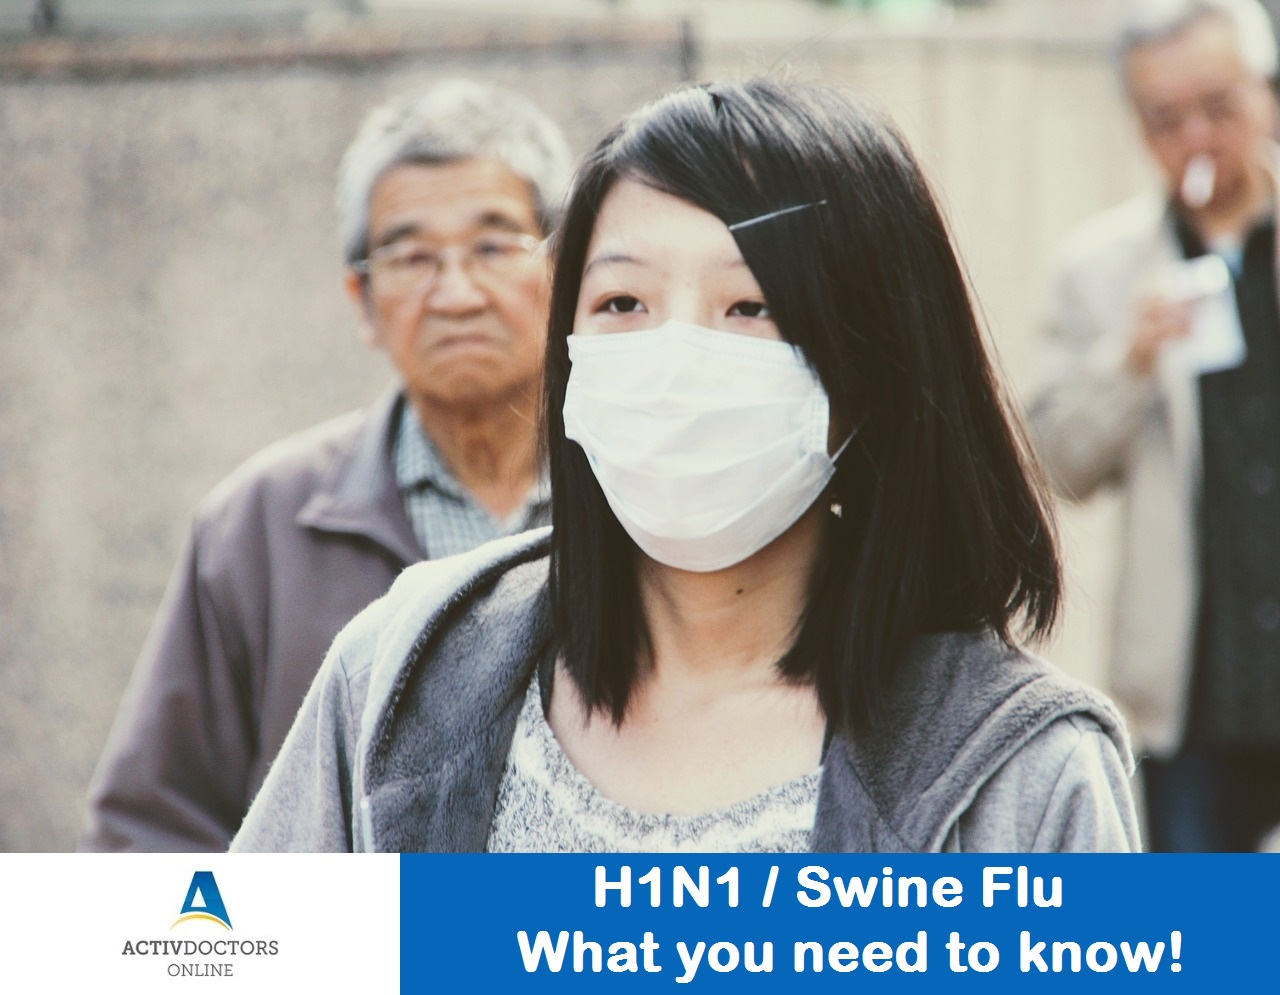 H1N1 / Swine Flu – What you need to know!